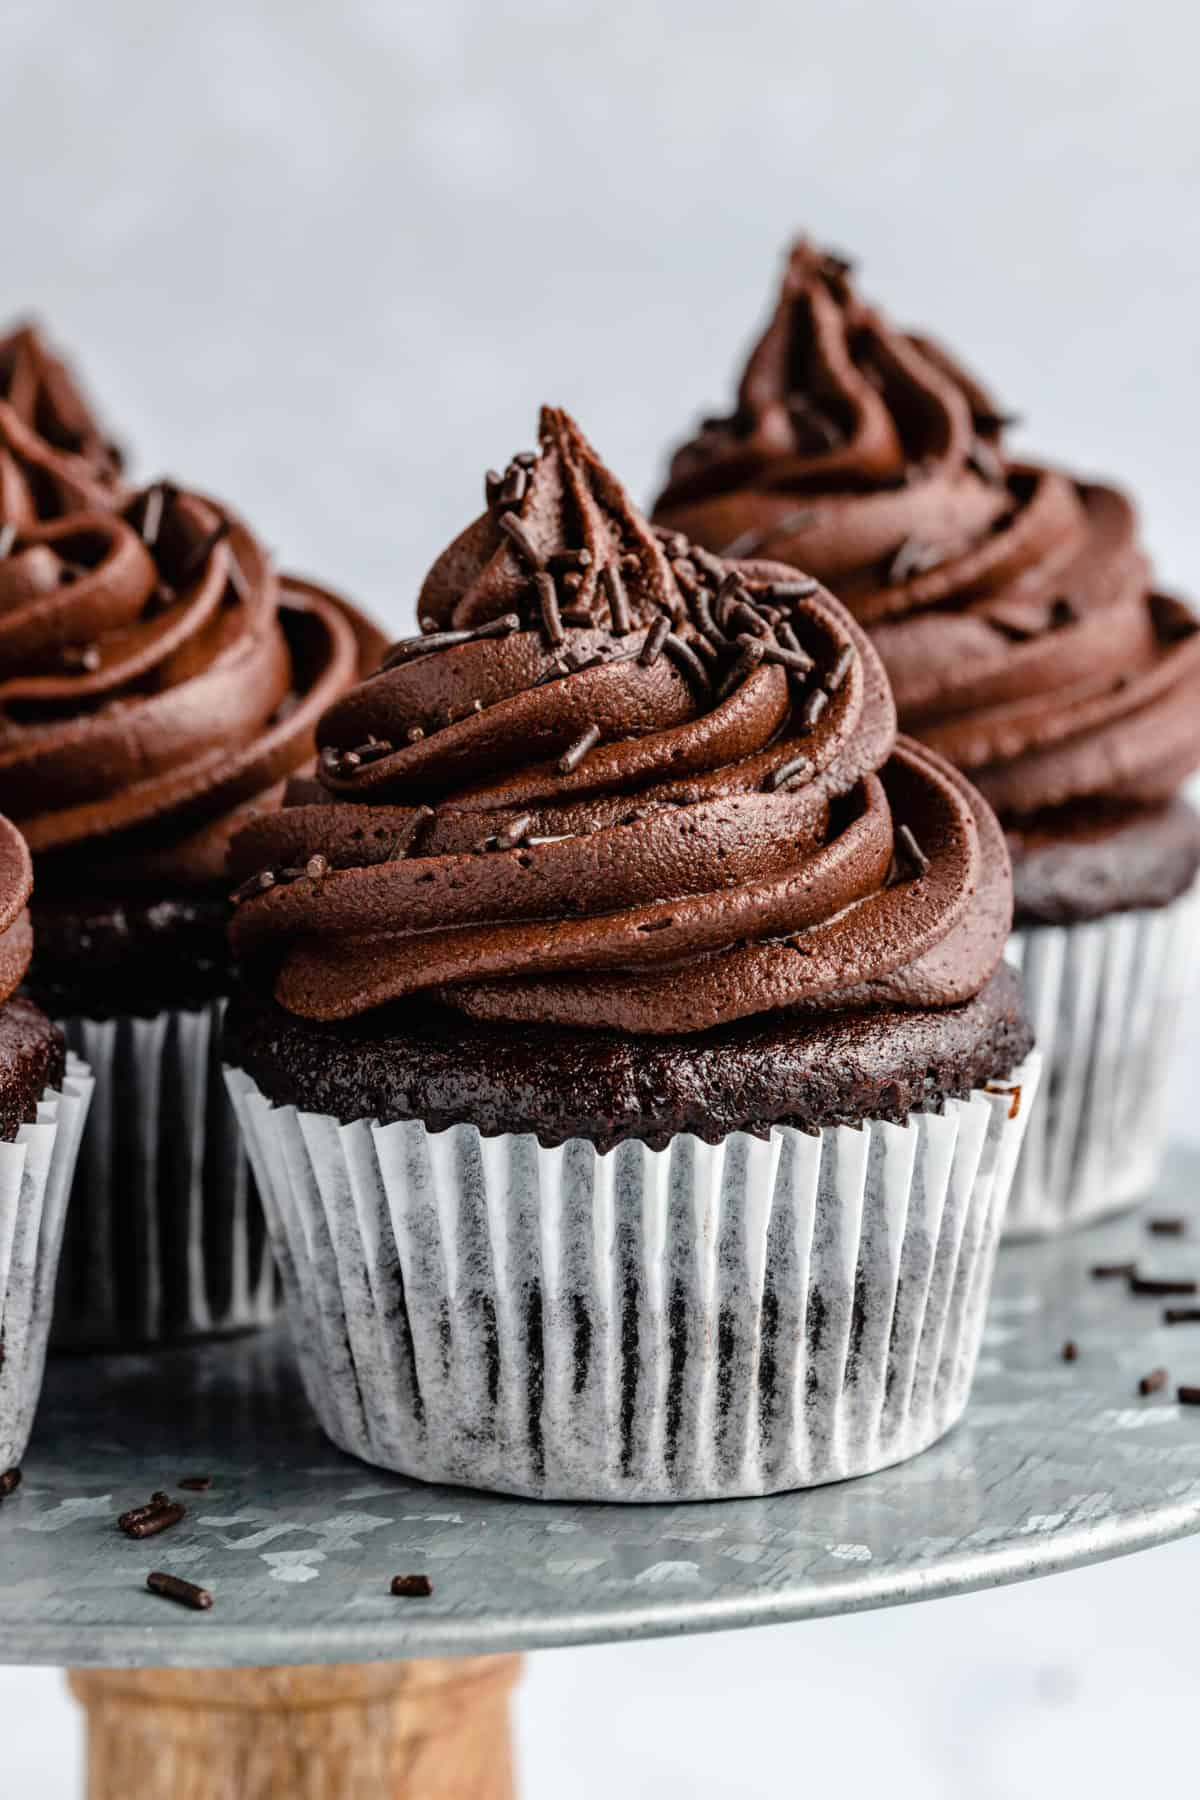 Chocolate cupcakes topped with vegan chocolate frosting in white cupcake papers